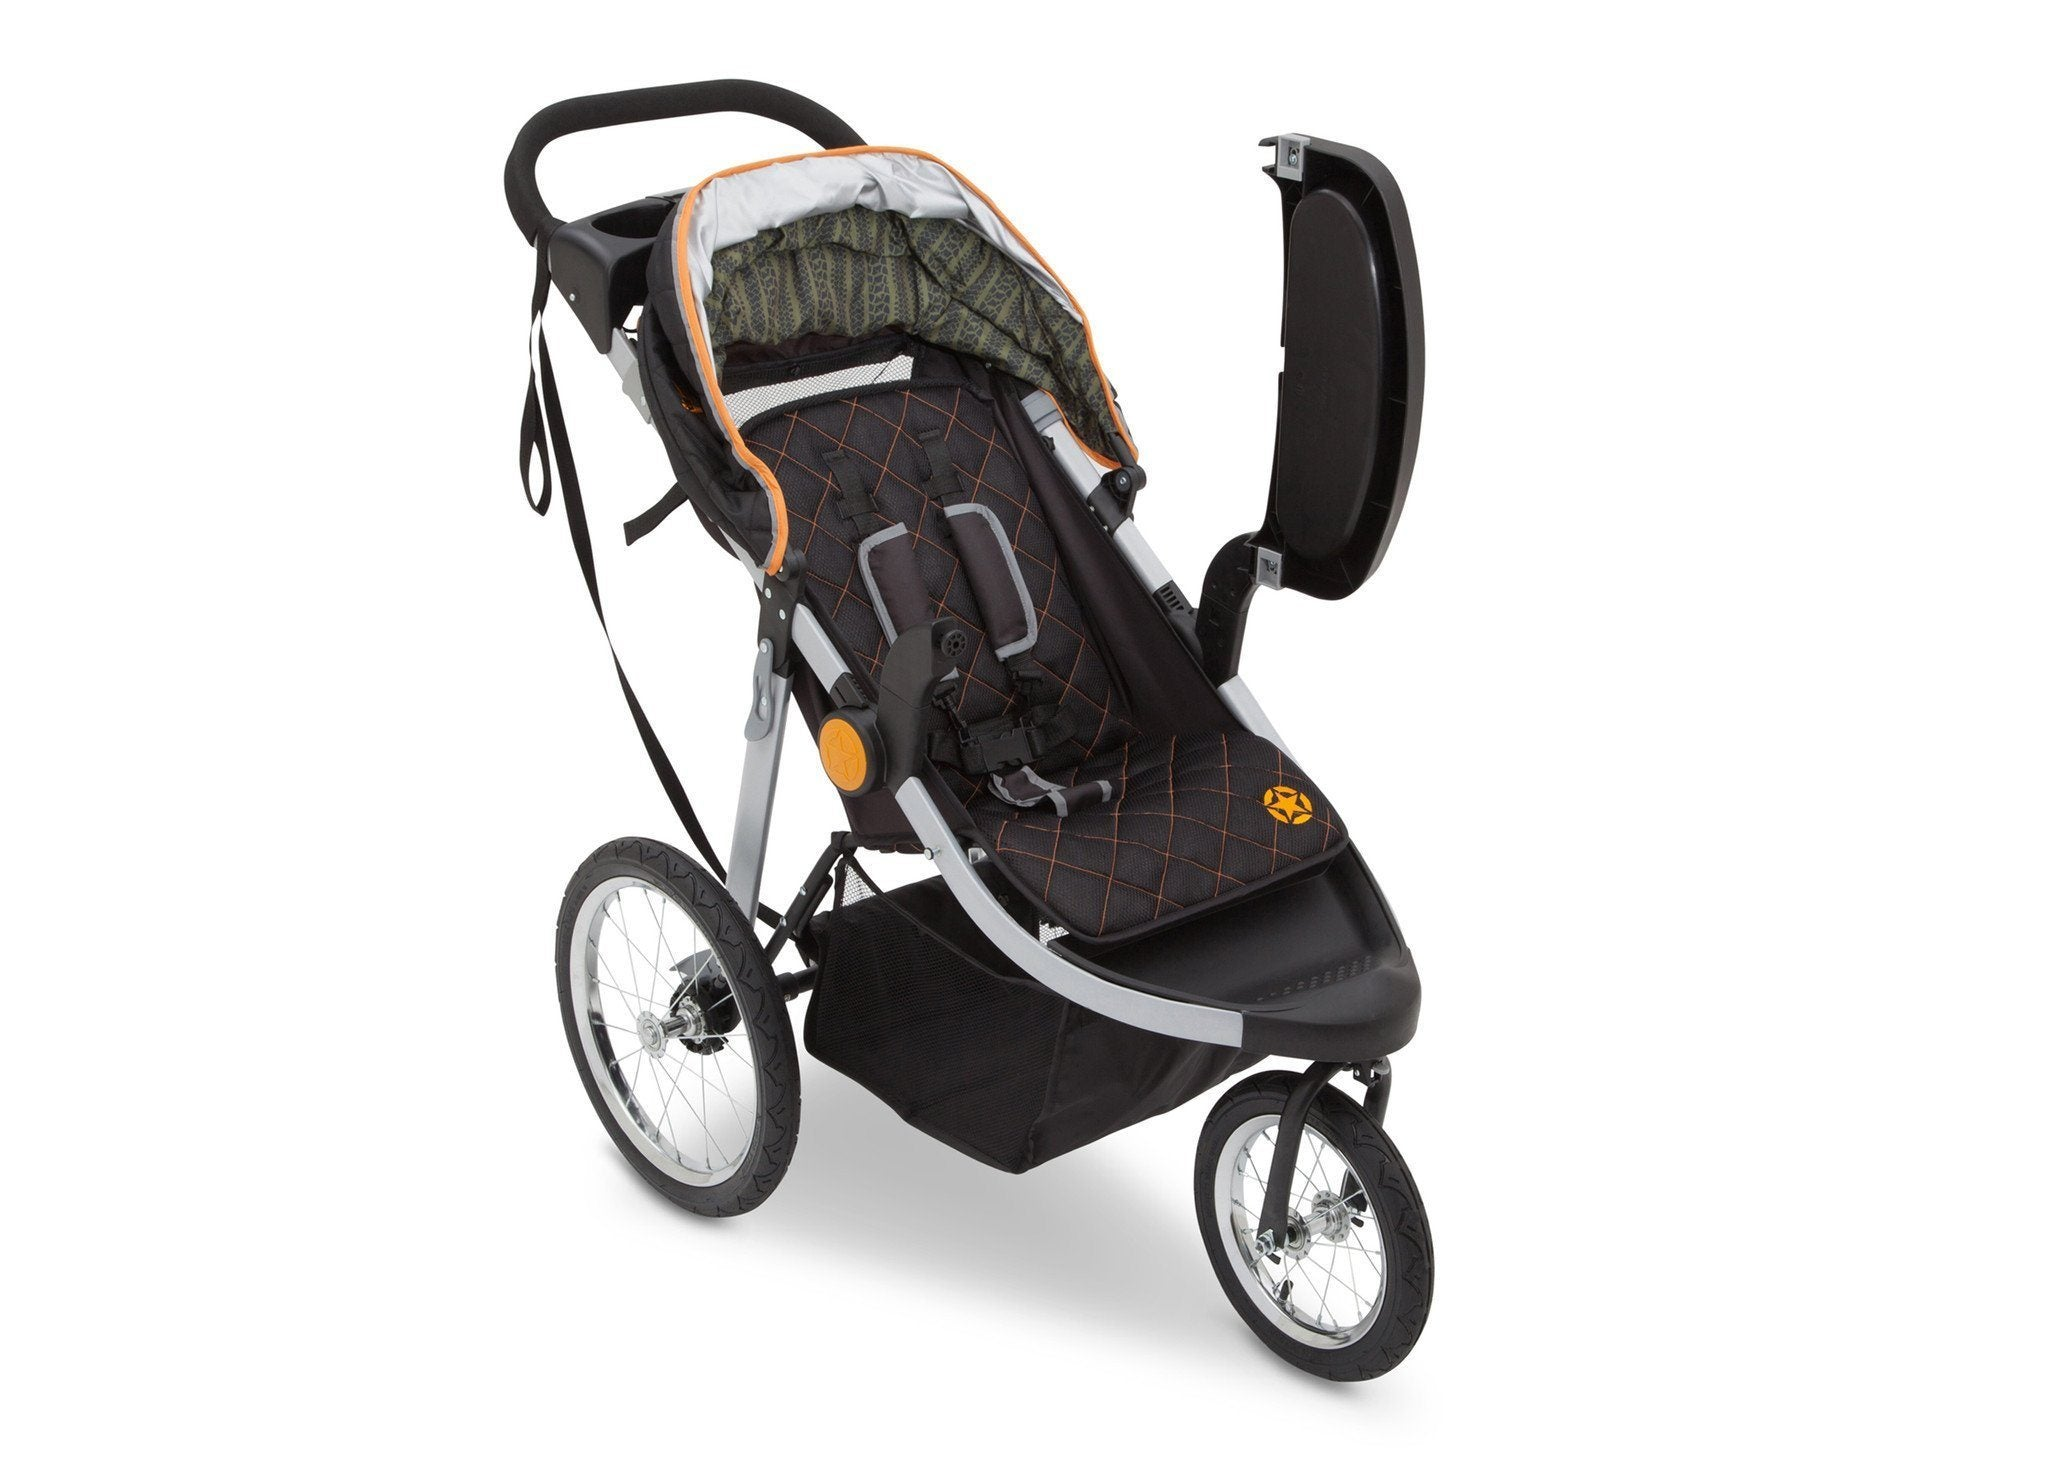 Delta Children J is for Jeep Brand Trek Orange (835) Cross Country All Terrain Jogging Stroller Right Side View d2d